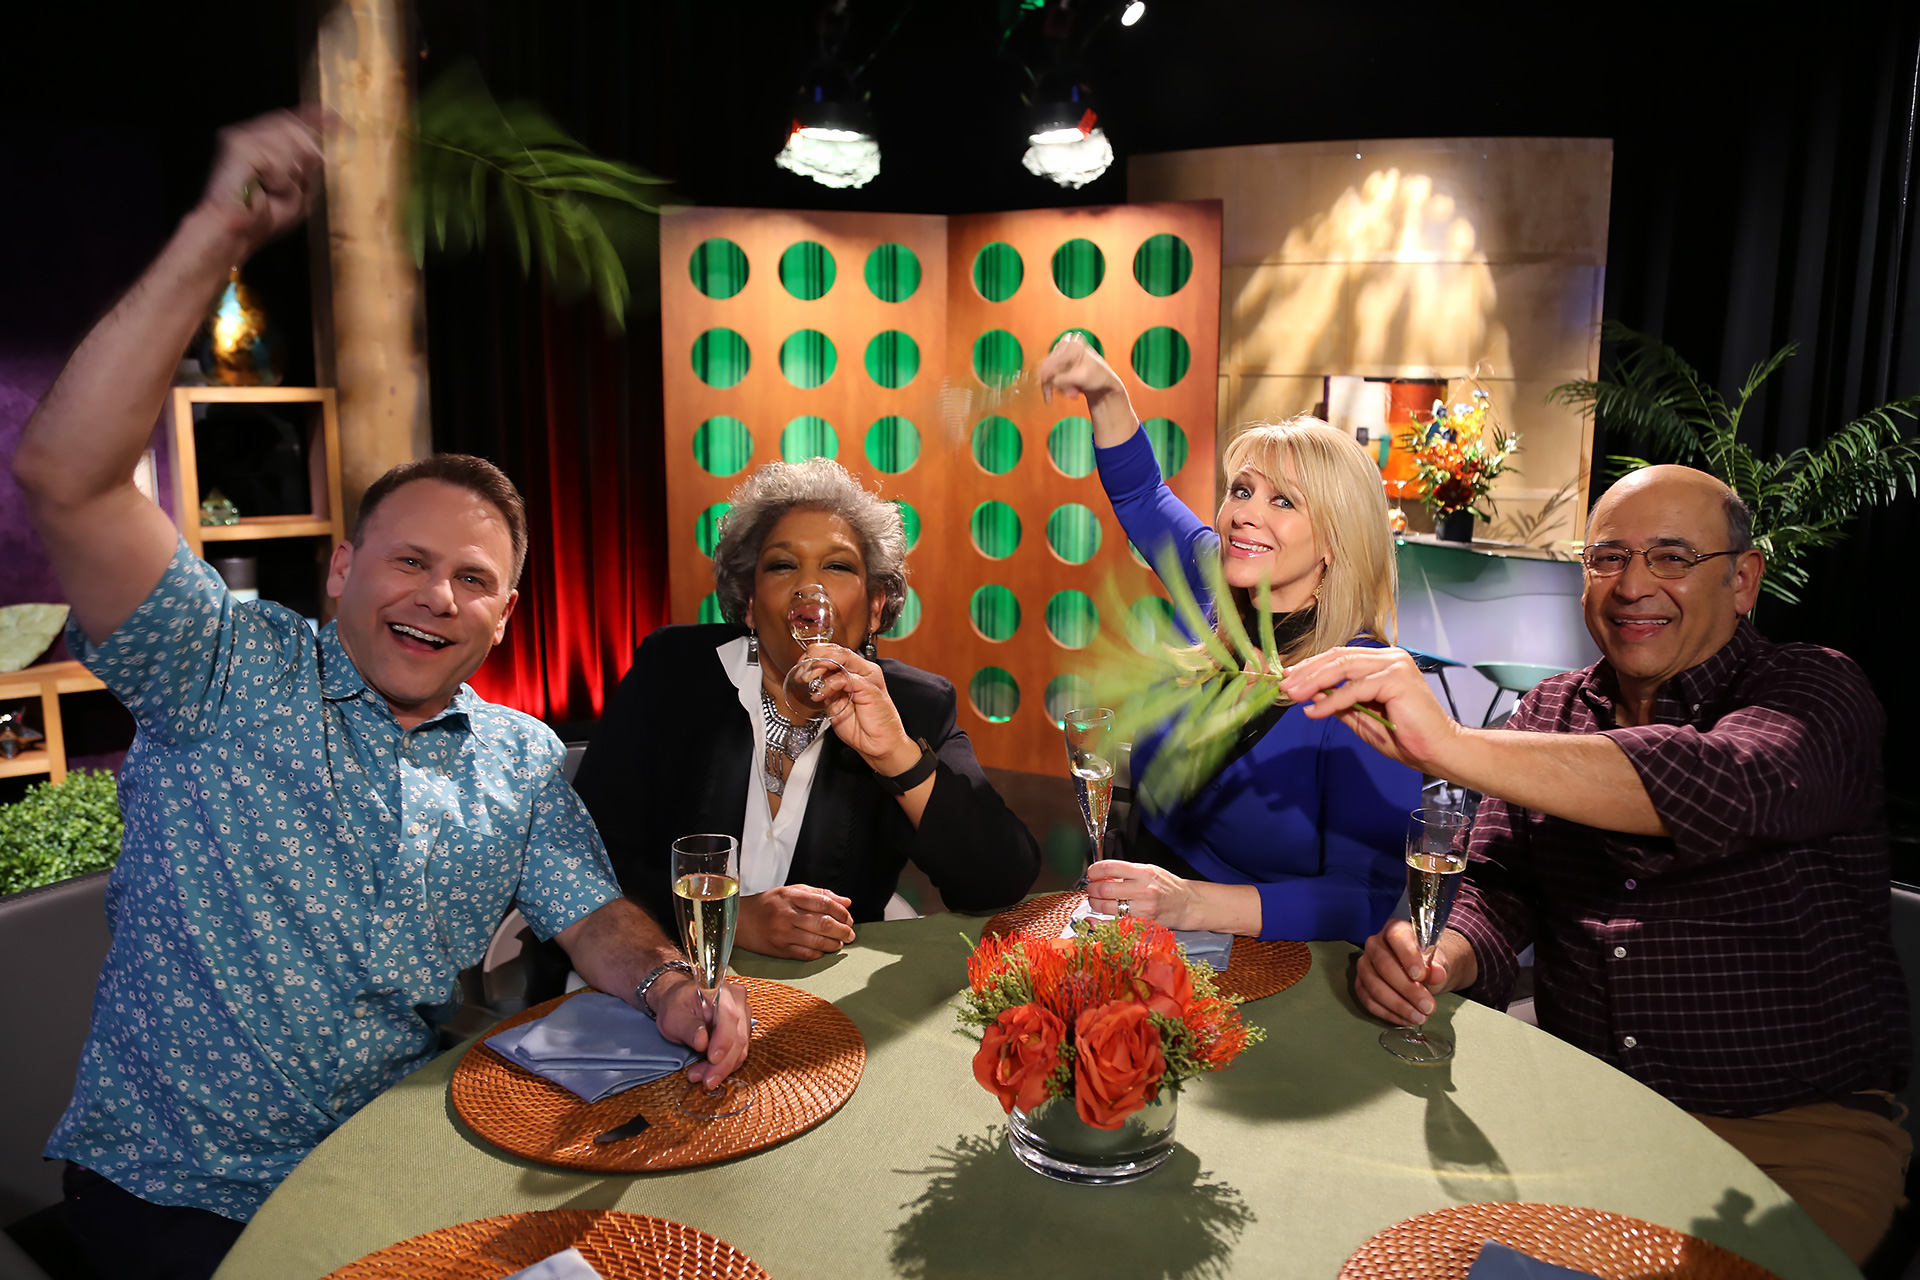 Host Leslie Sbrocco and guests having fun on the set of the premiere episode of season 13.